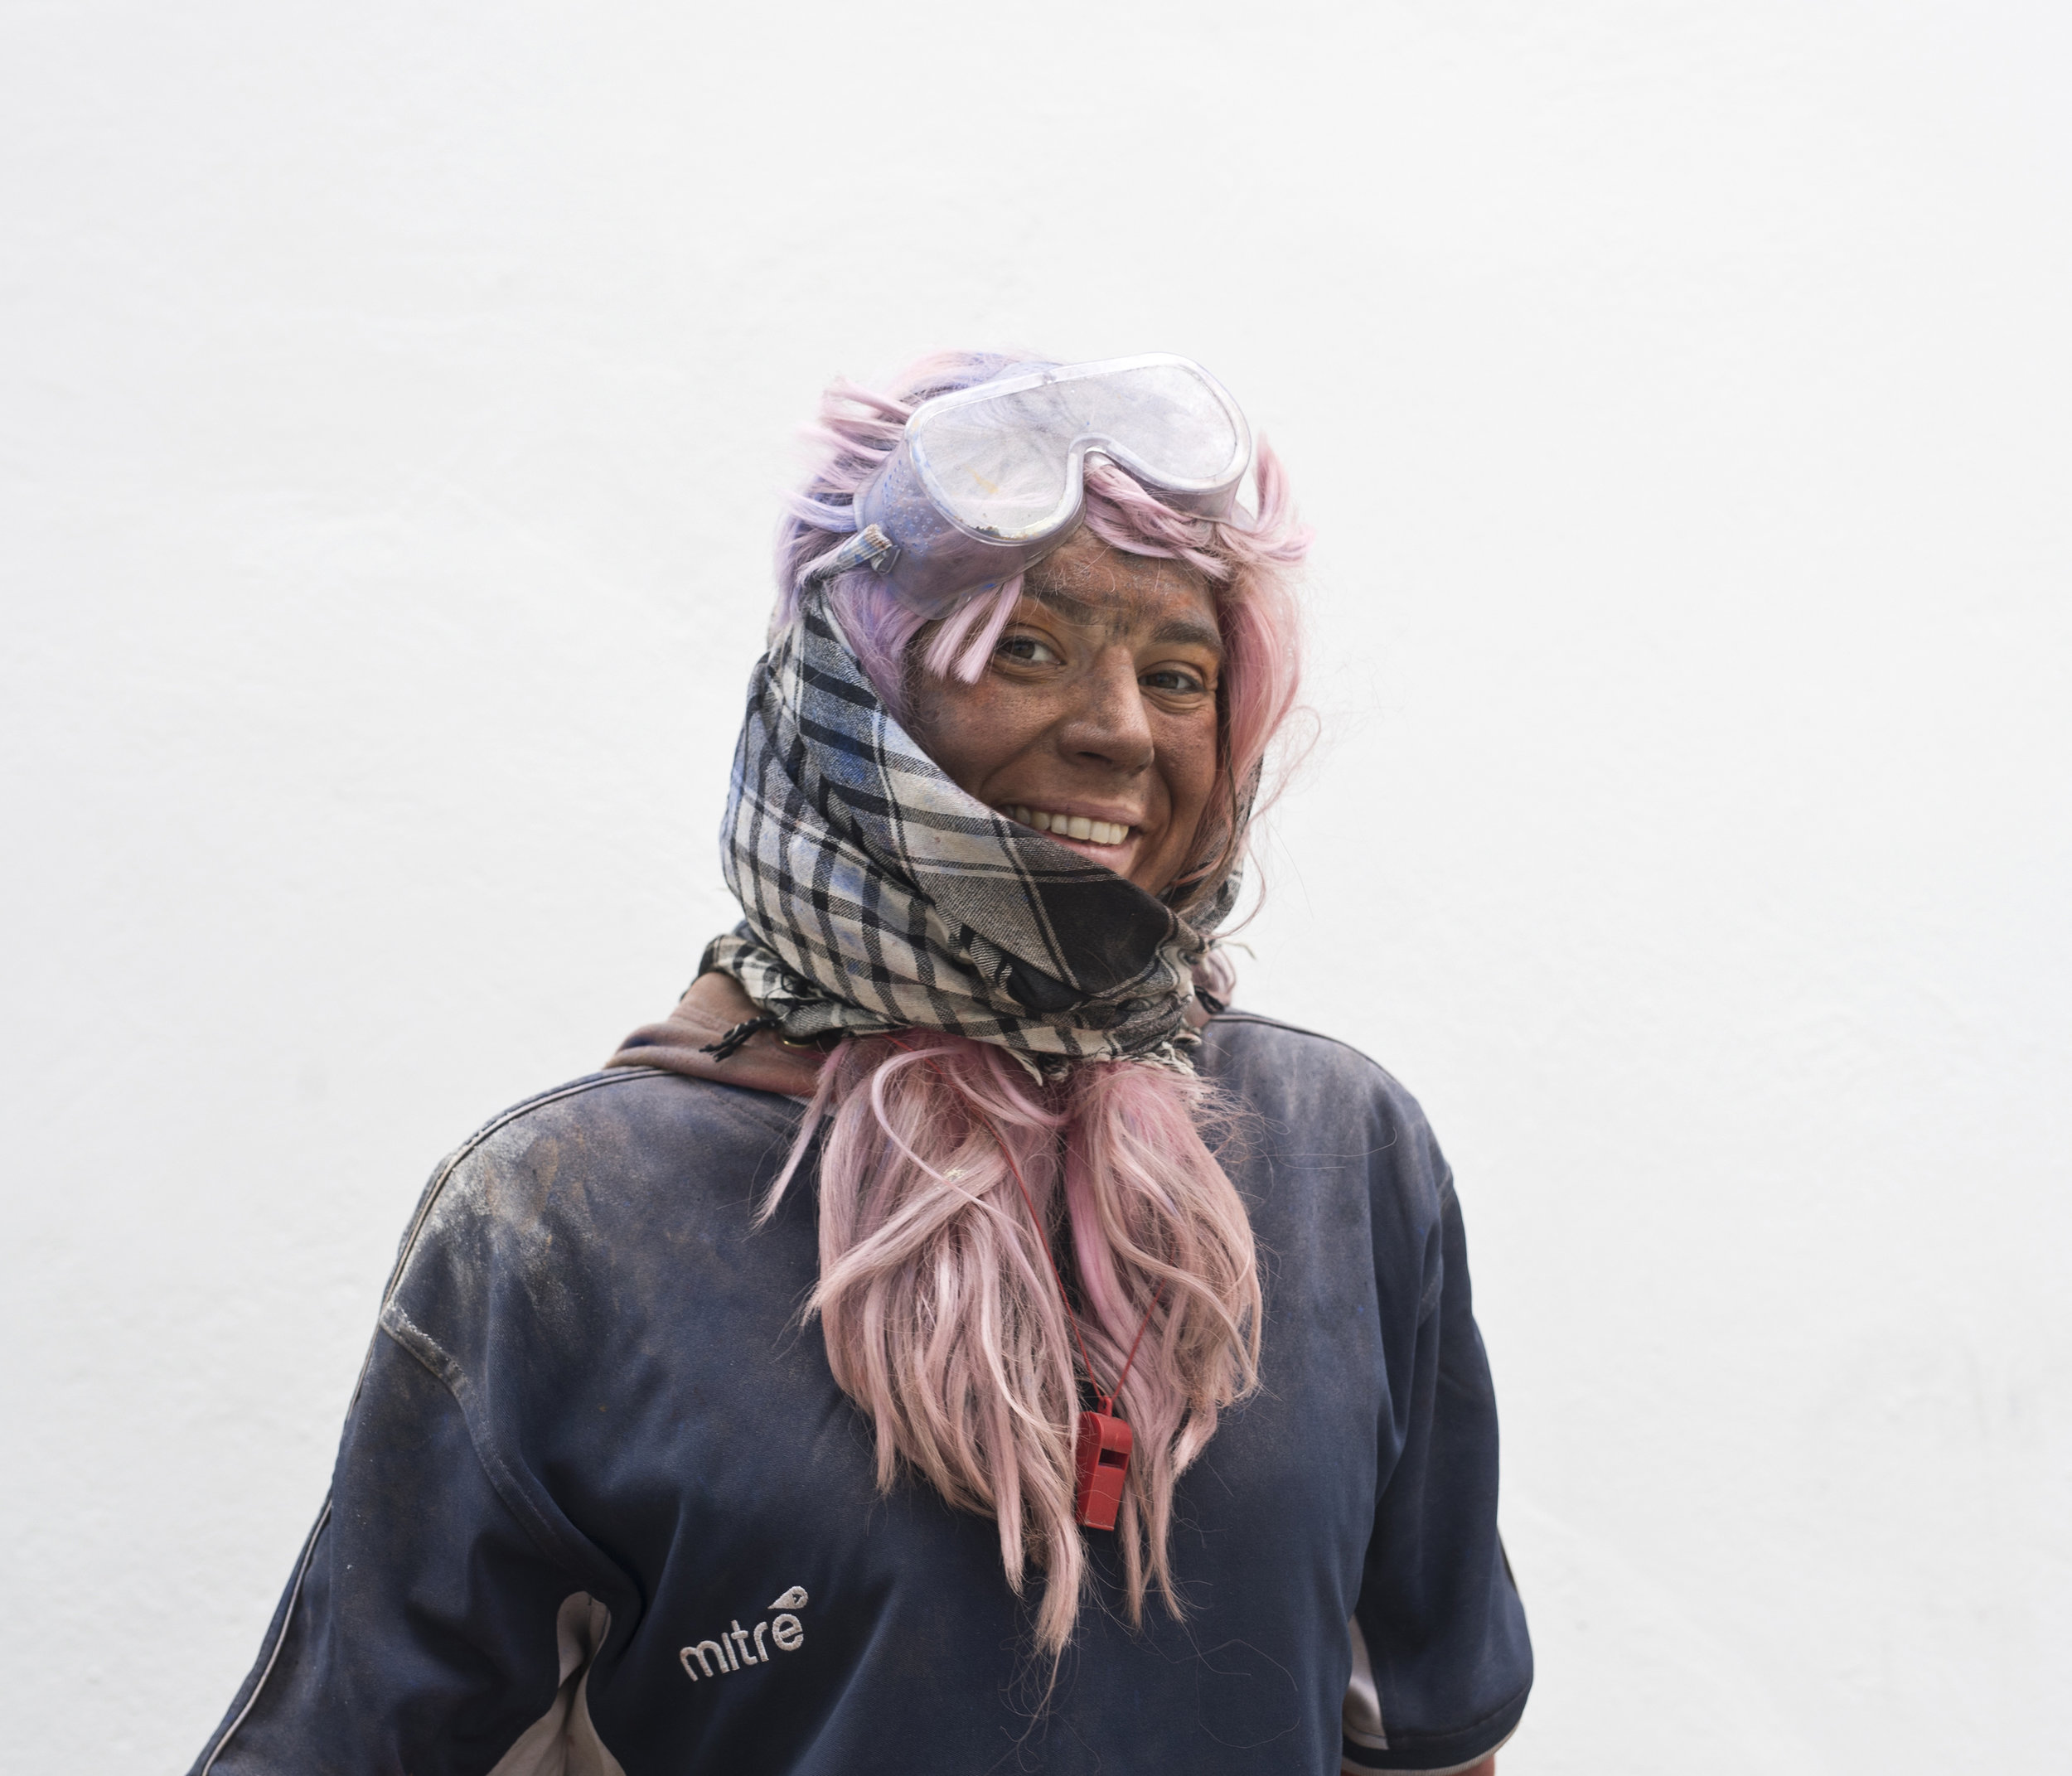 In this Monday, Feb. 19, 2018 photo Konstantina Karibouza 30, poses for a portrait as she takes part in the flour war, a unique colorful flour fight marking the end of the carnival season in the port town of Galaxidi, some 200 kilometers (120 miles) west of Athens. (AP Photo/Petros Giannakouris)